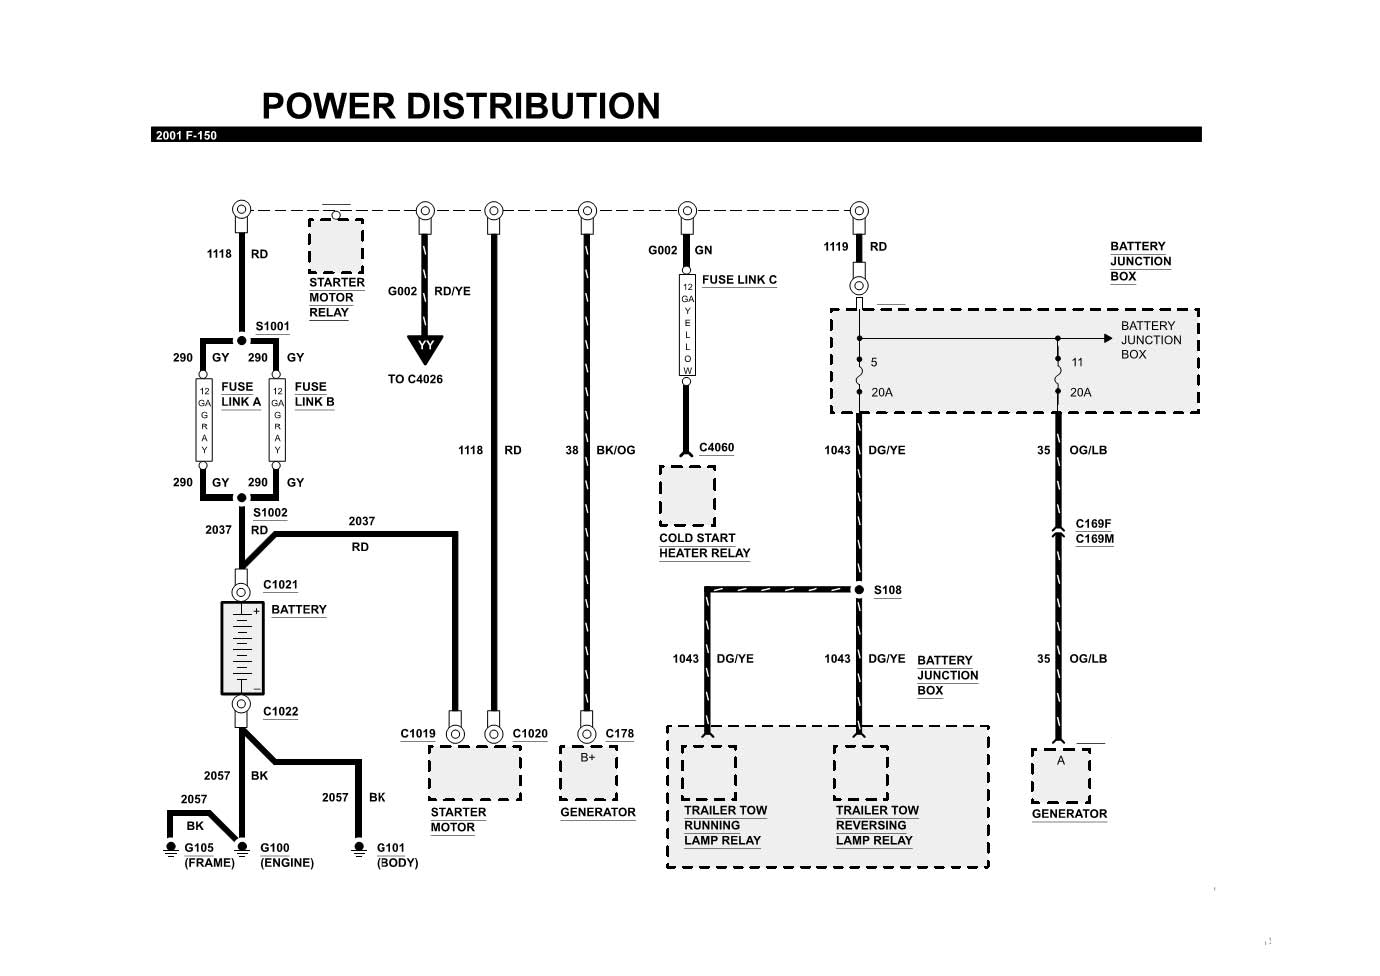 2001 Ford Focus Fuel Pump Wiring Diagram : 40 Wiring